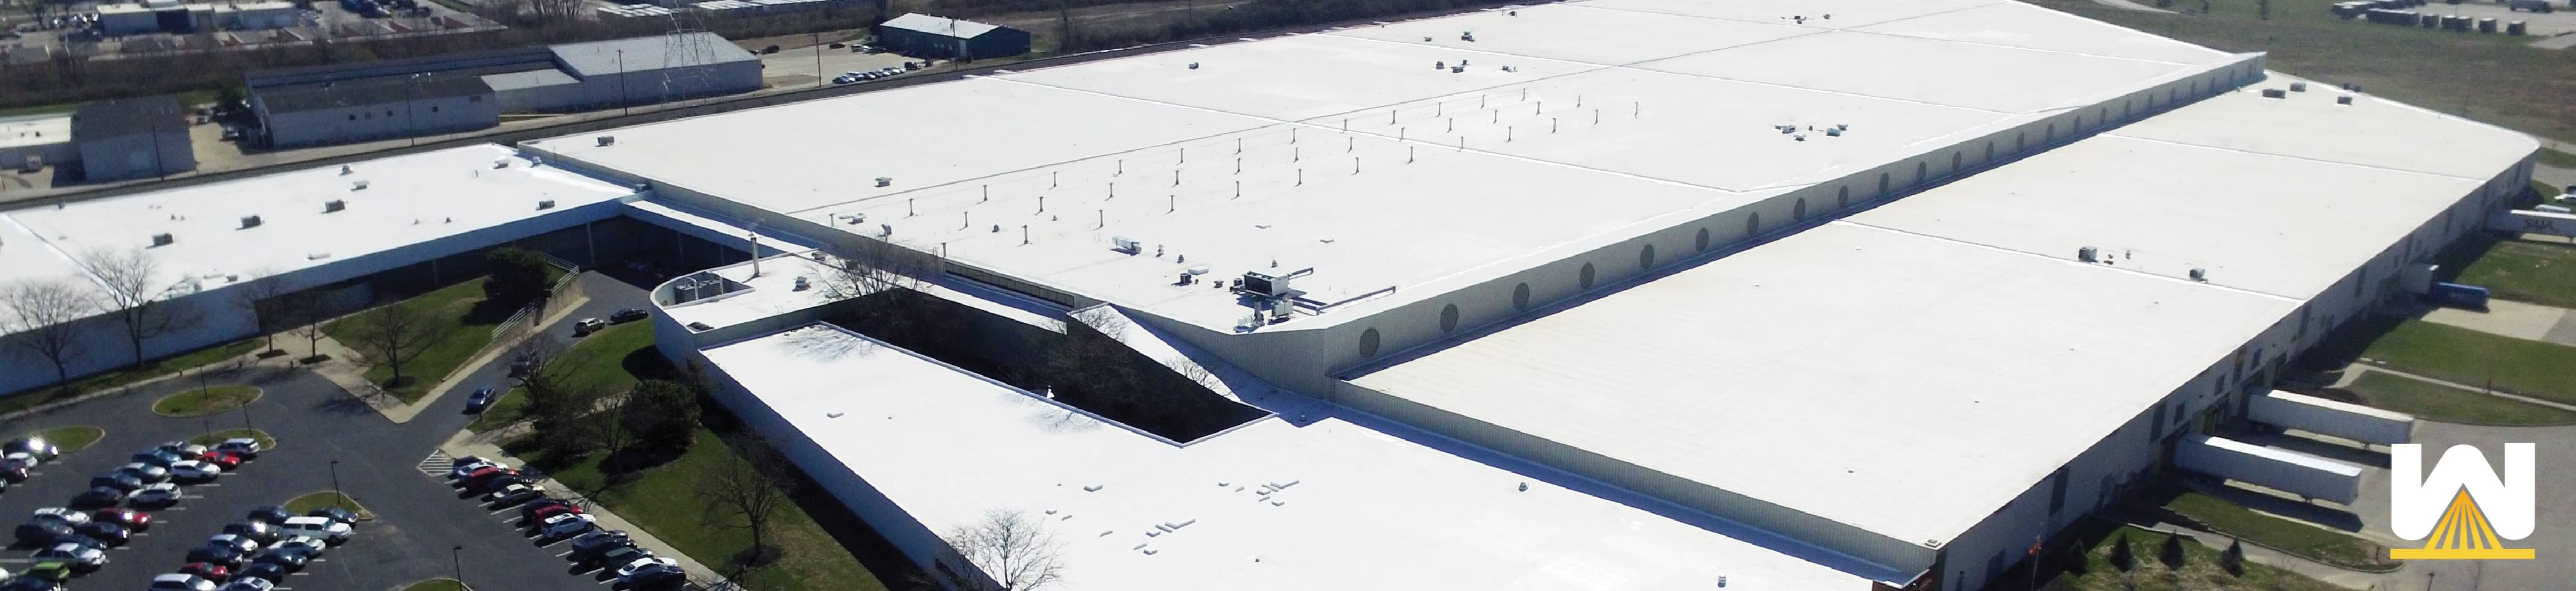 Commercial Roof Silicone Restoration Membrane: Pros And Cons To Roof  Coatings | Commercial Roofing Contractor, Cleveland Ohio